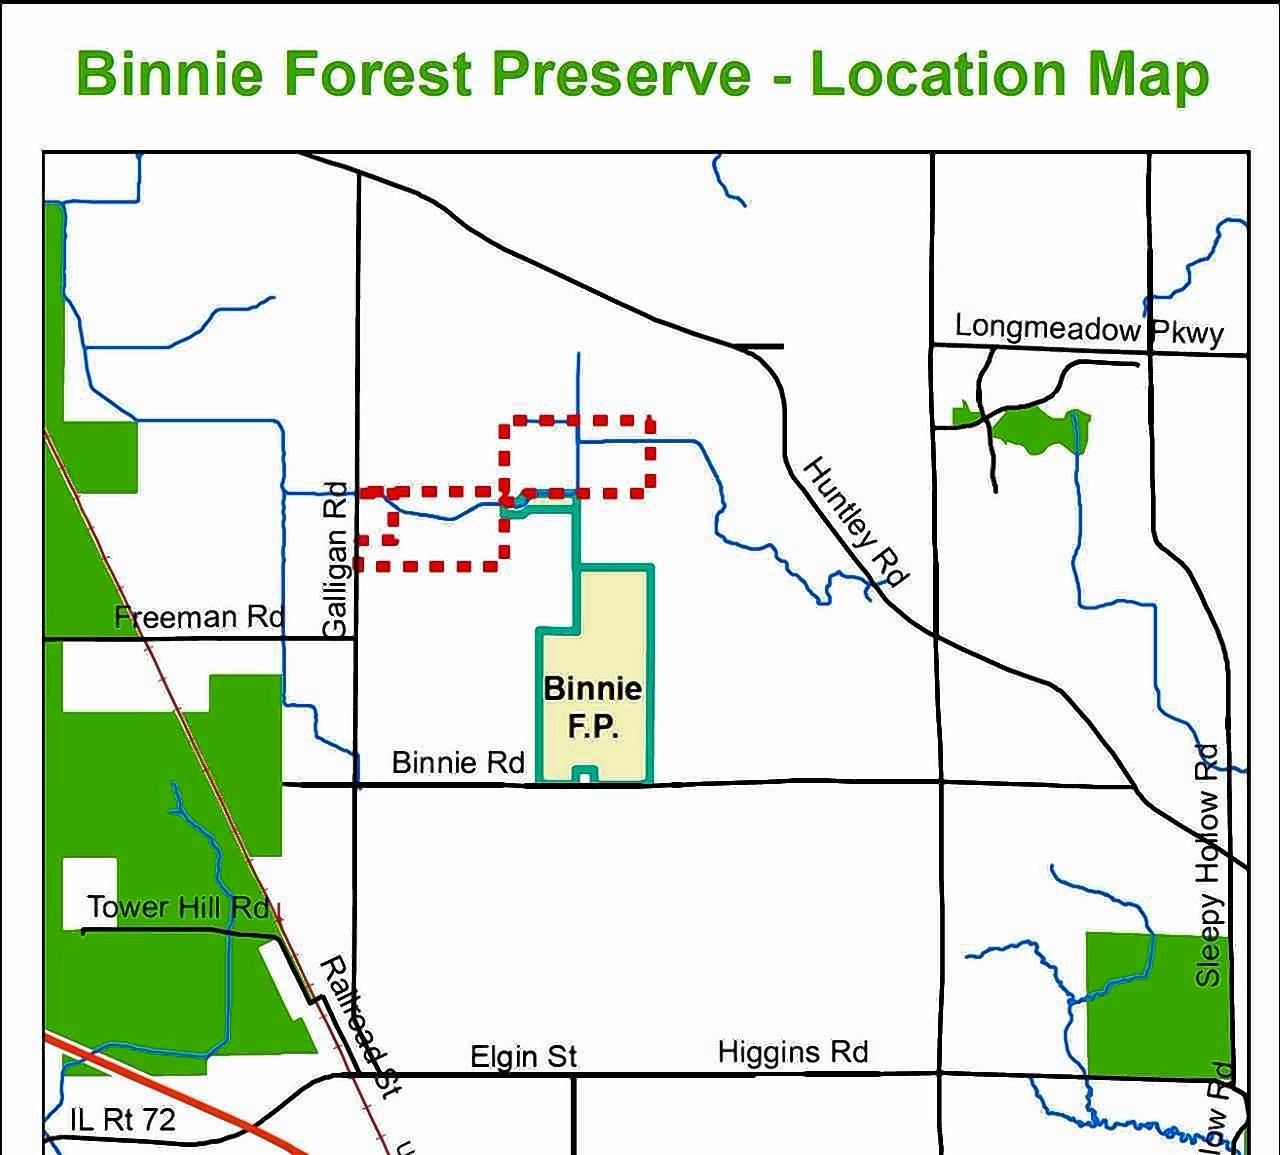 The dotted area on the map shows two land parcels totaling nearly 150 acres the Kane County Forest Preserve District is targeting for purchase near Binnie Forest Preserve.